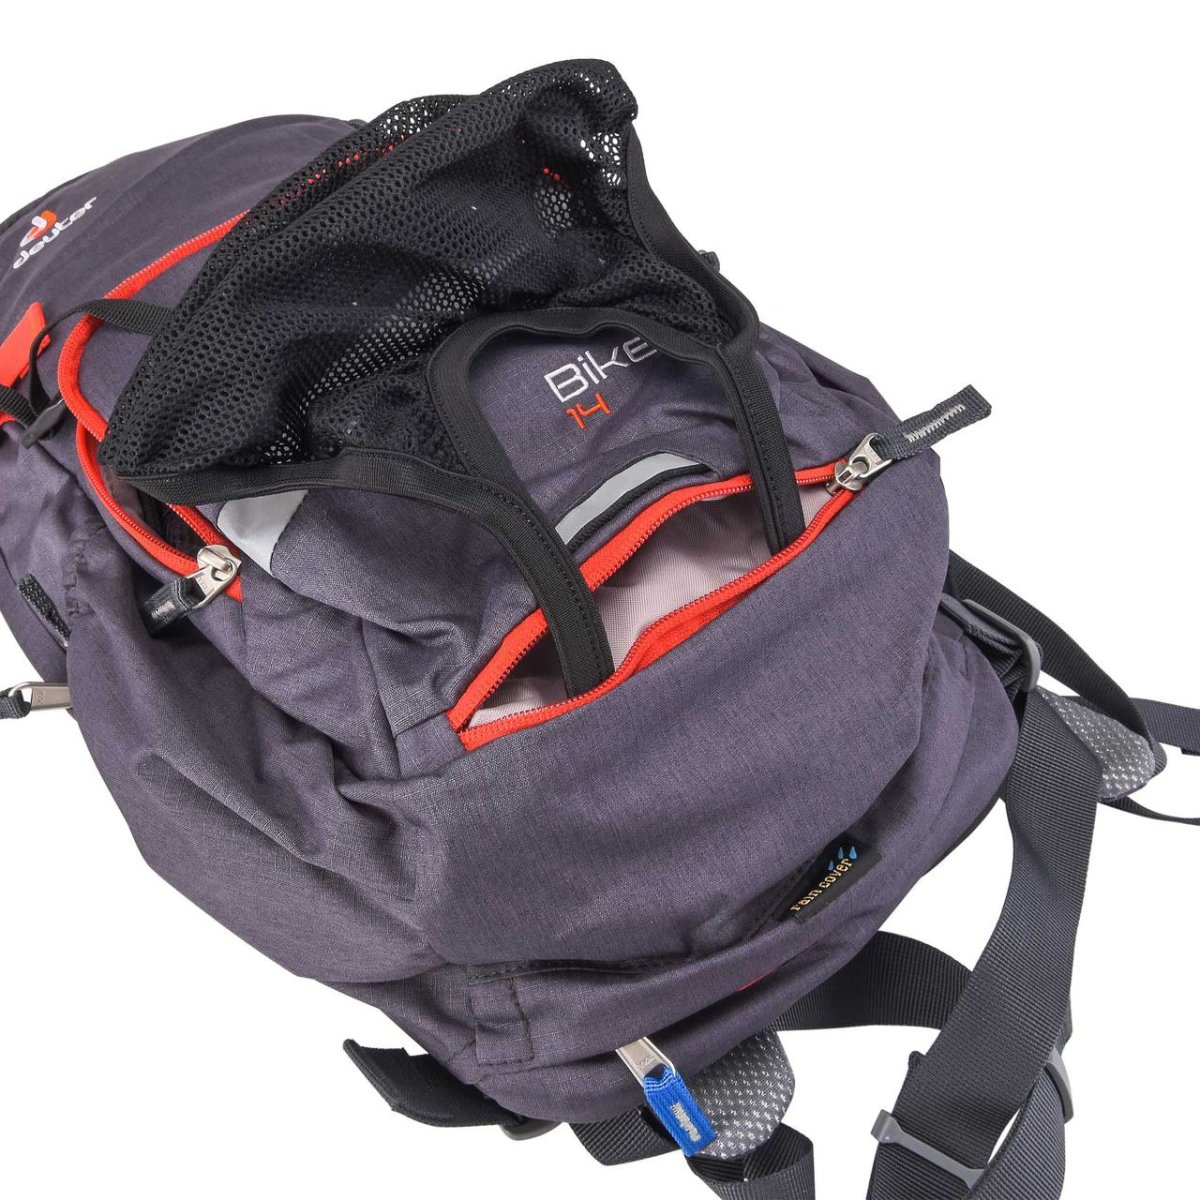 Рюкзак Deuter Bike I 14 graphite-papaya (4906) 4 3203117 4906